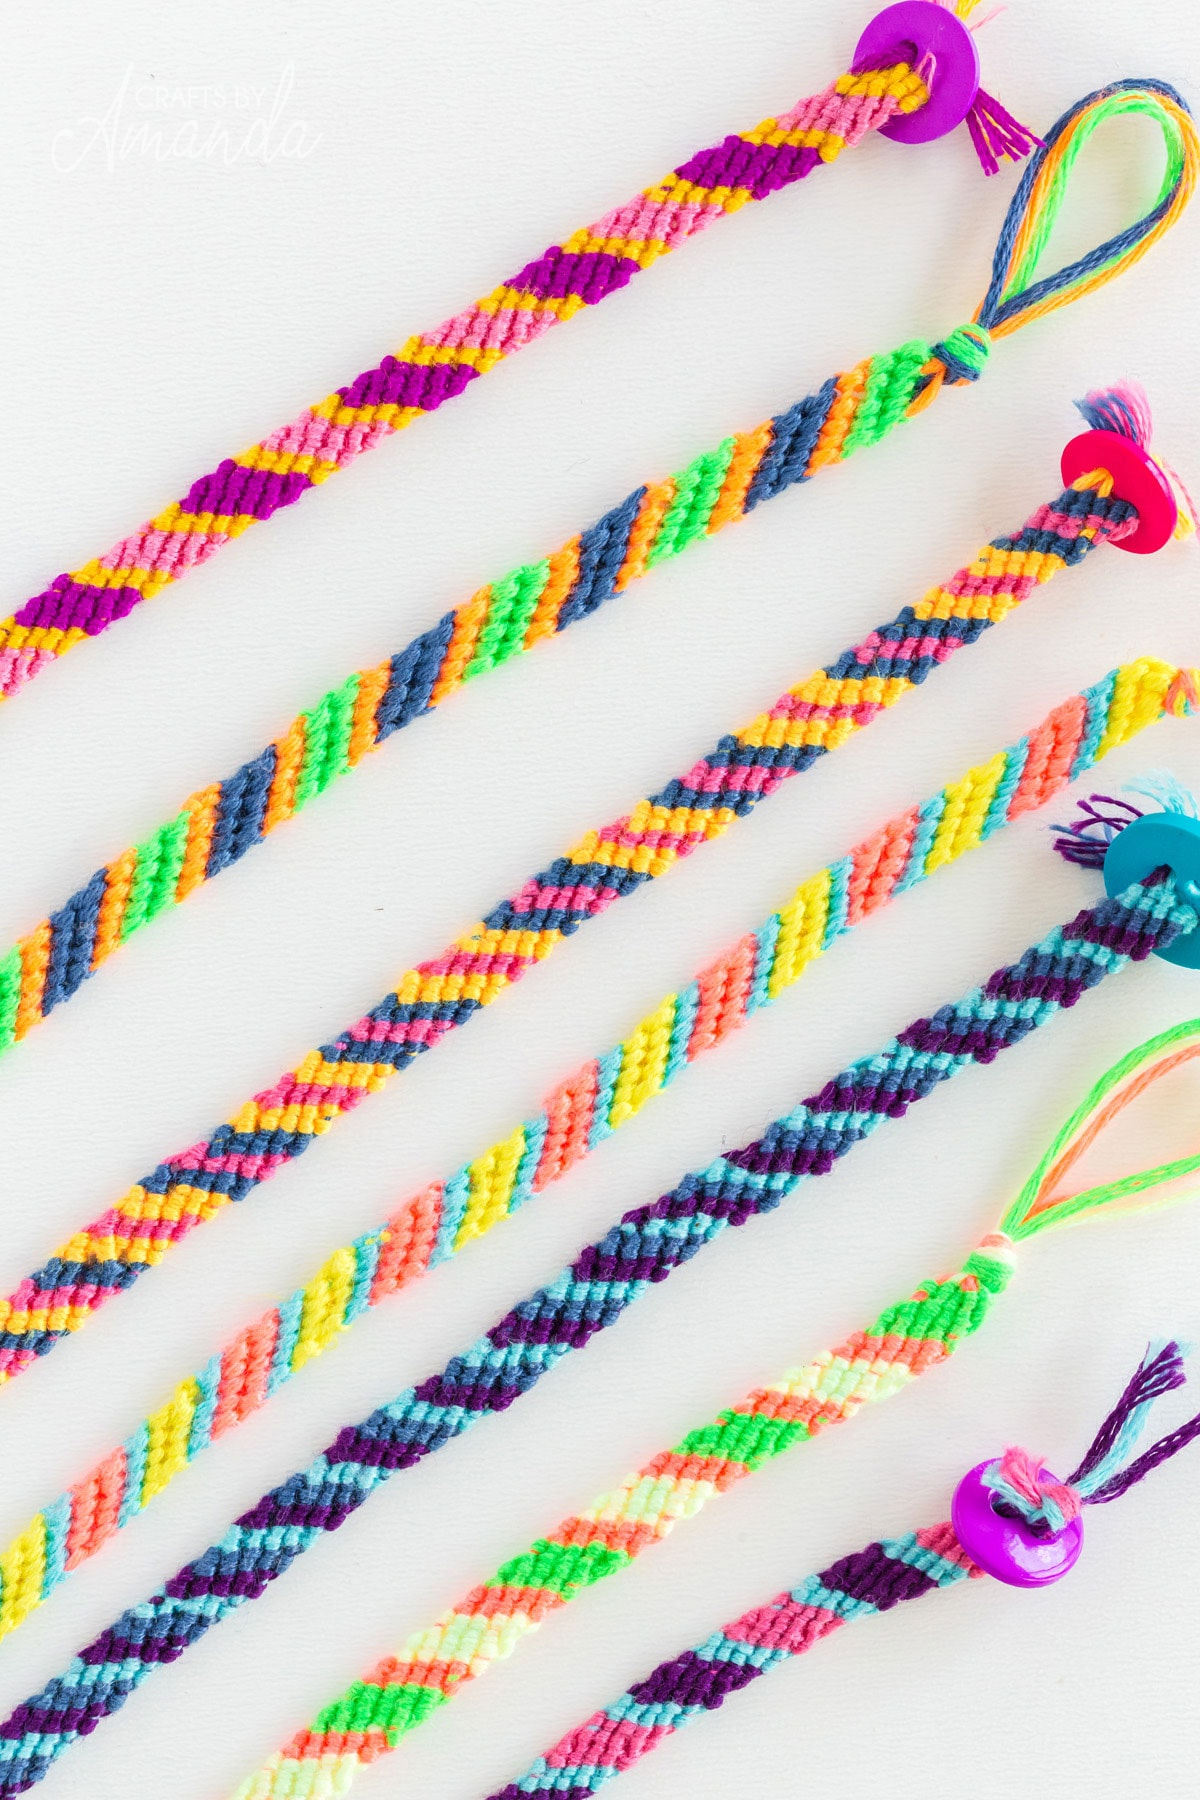 several friendship bracelets laying on a table